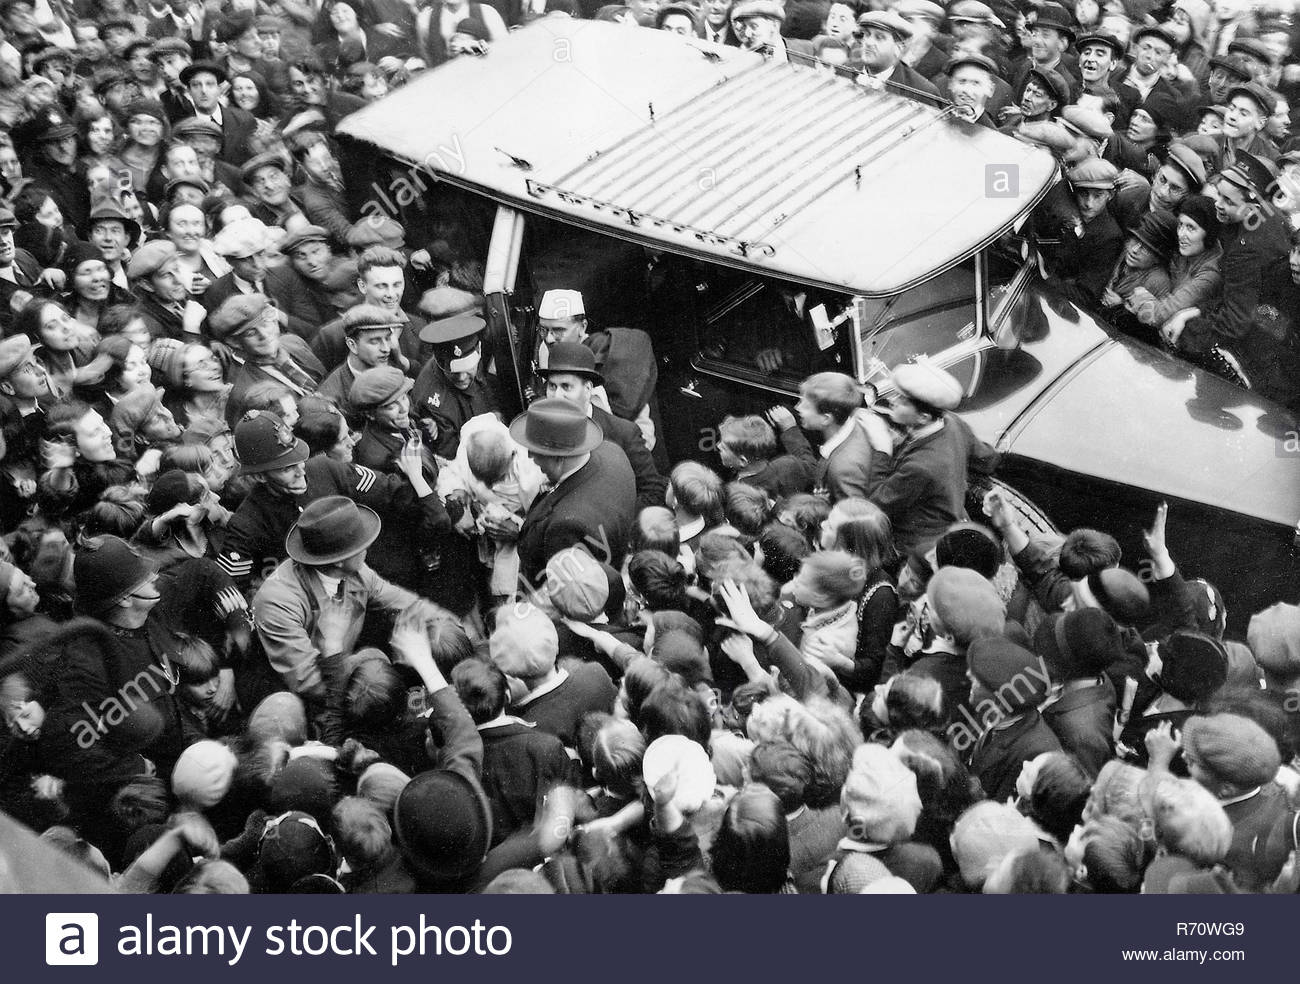 Mahatma Gandhi on his way to meet Charlie Chaplin, September 22, 1931 - MODEL RELEASE NOT AVAILABLE - Stock Image